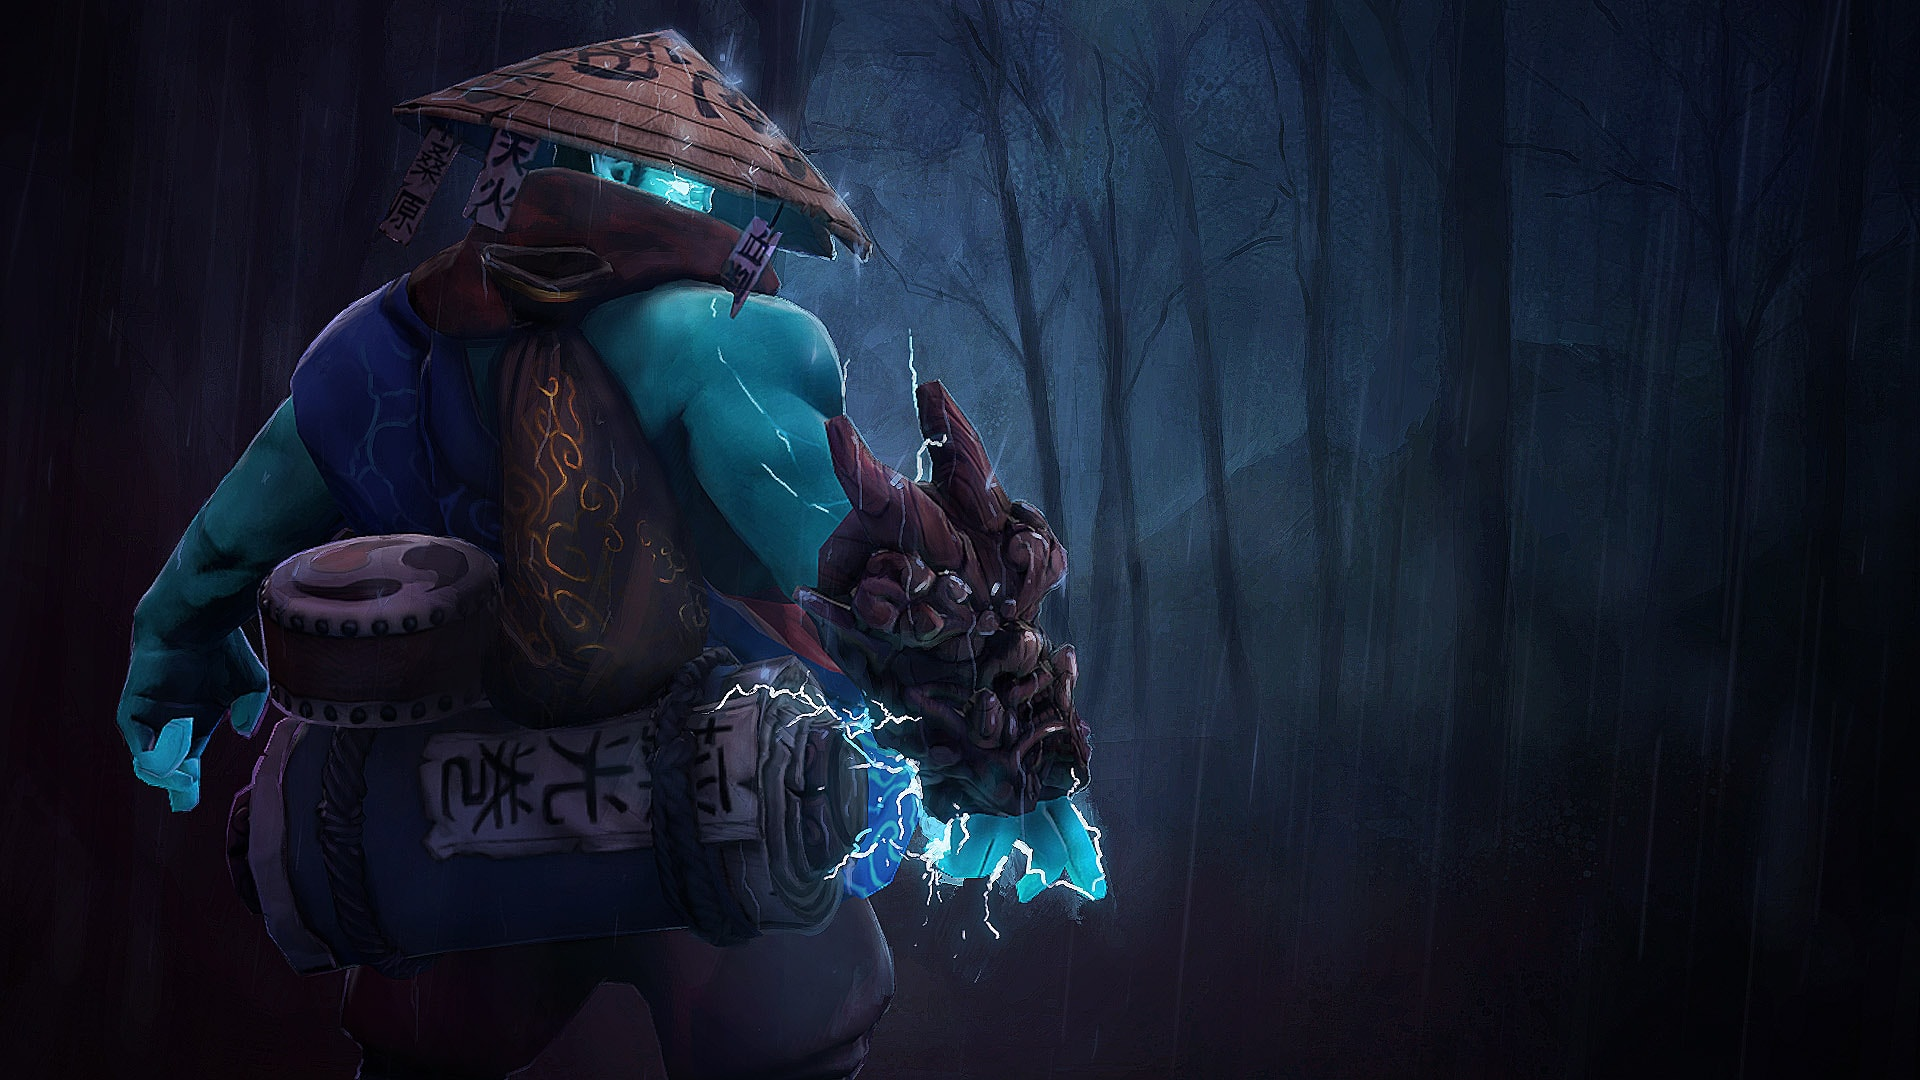 dota2 storm spirit hd desktop wallpapers 7wallpapers net